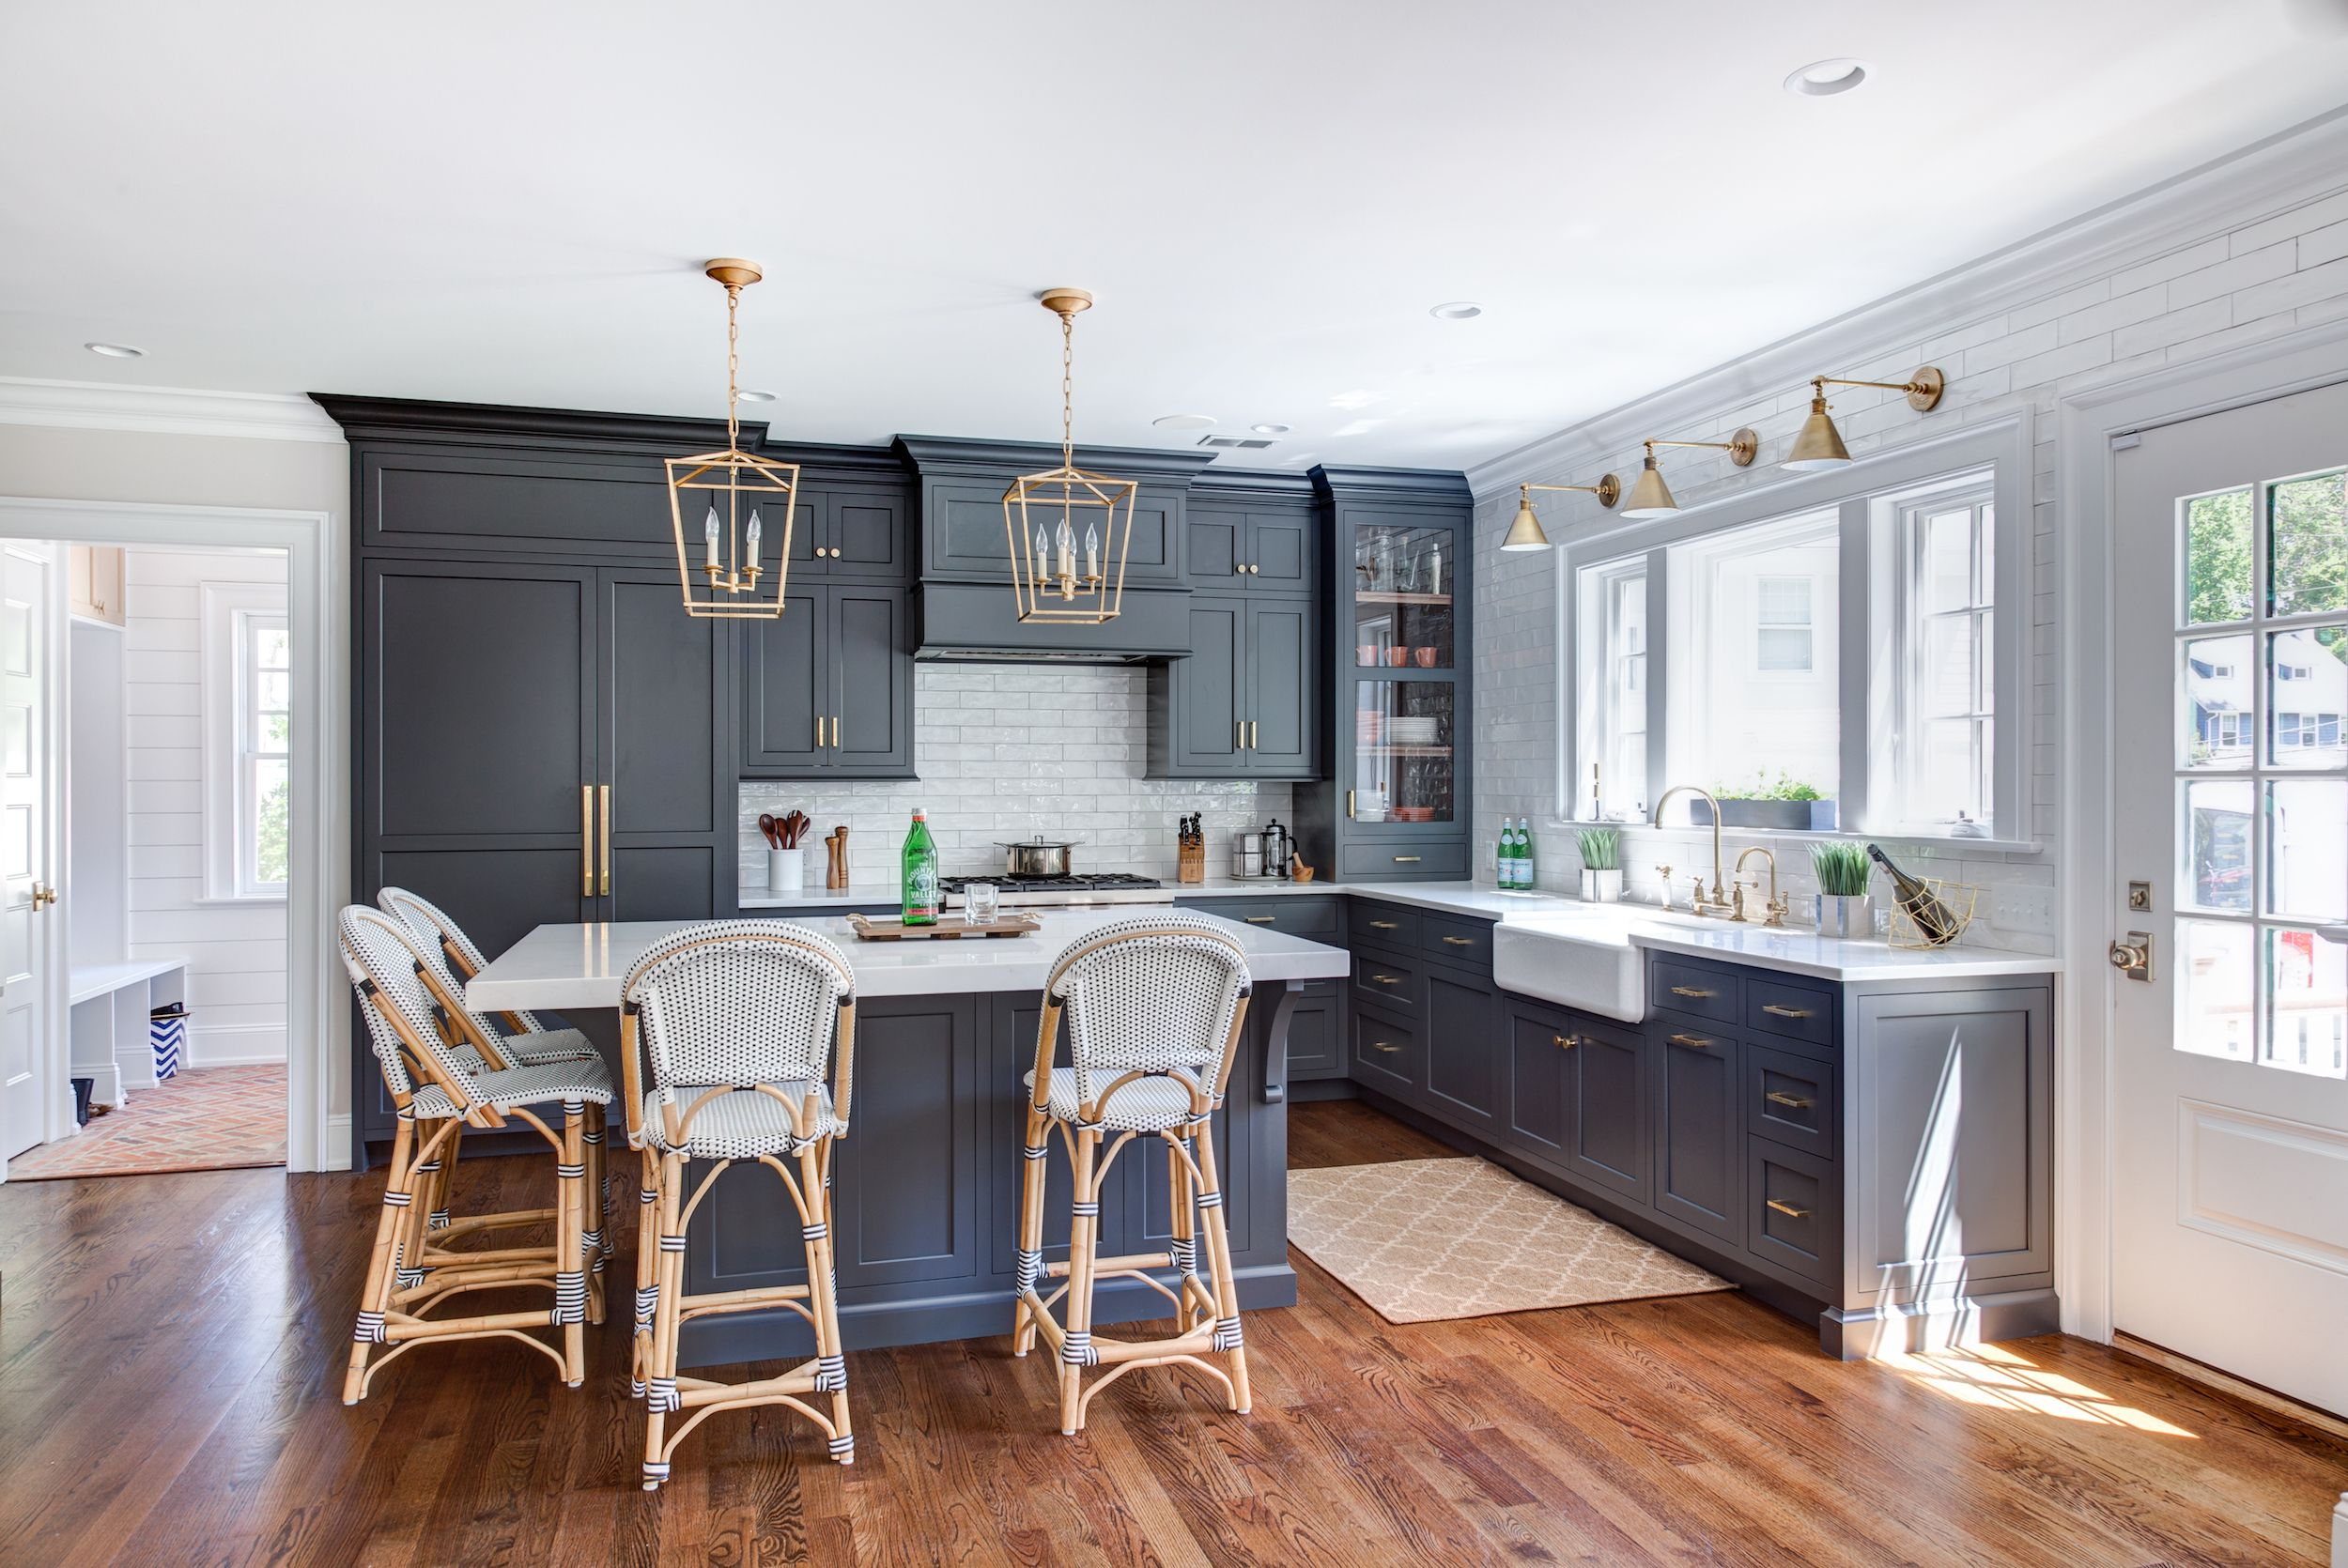 5 kitchen layout tips the pros swear by